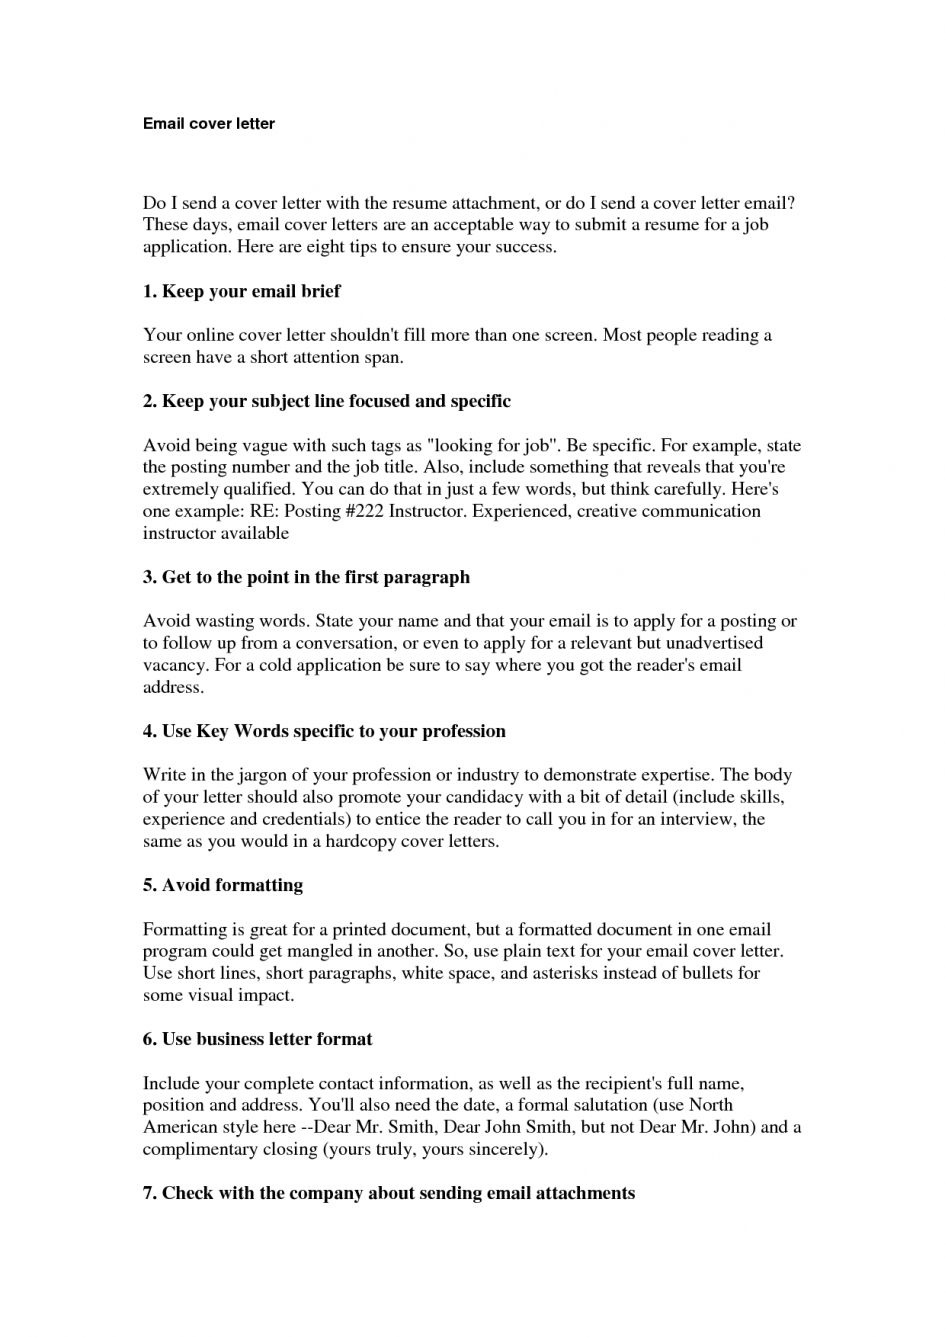 cover letter through email for jobs examples throughout sample cover letter through email for jobs examples